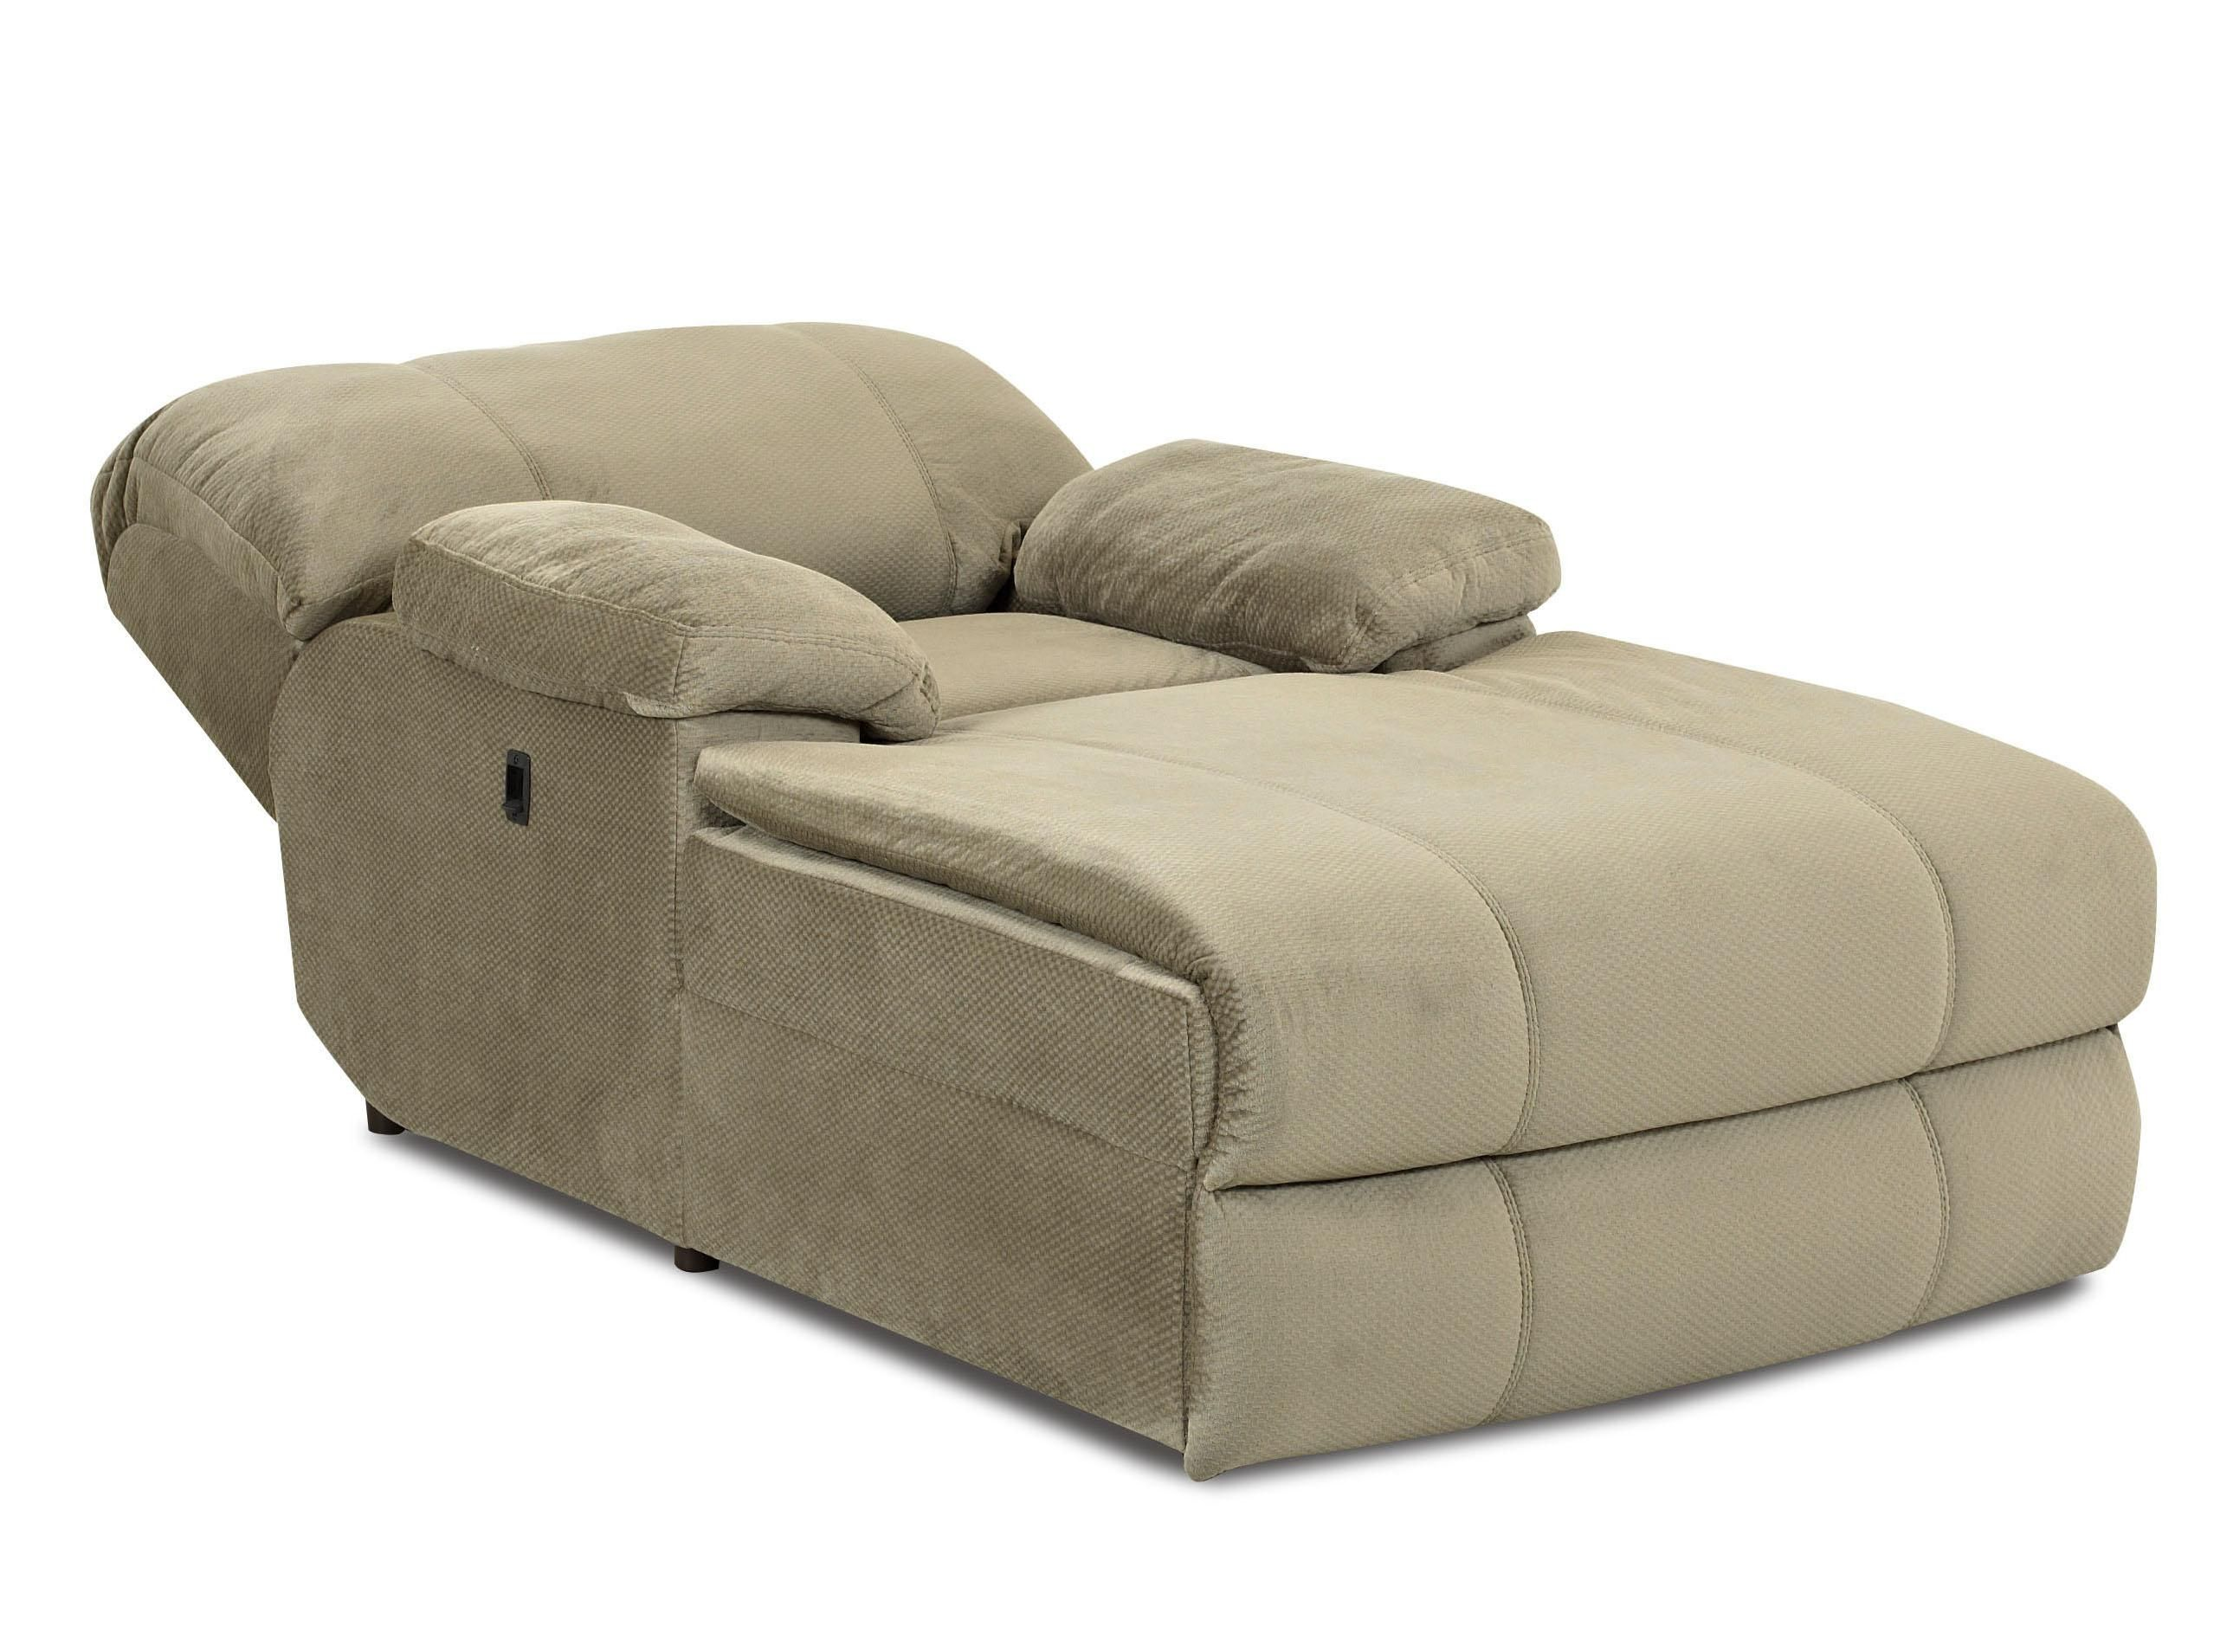 indoor madaga lounge patio chaise info wicker double